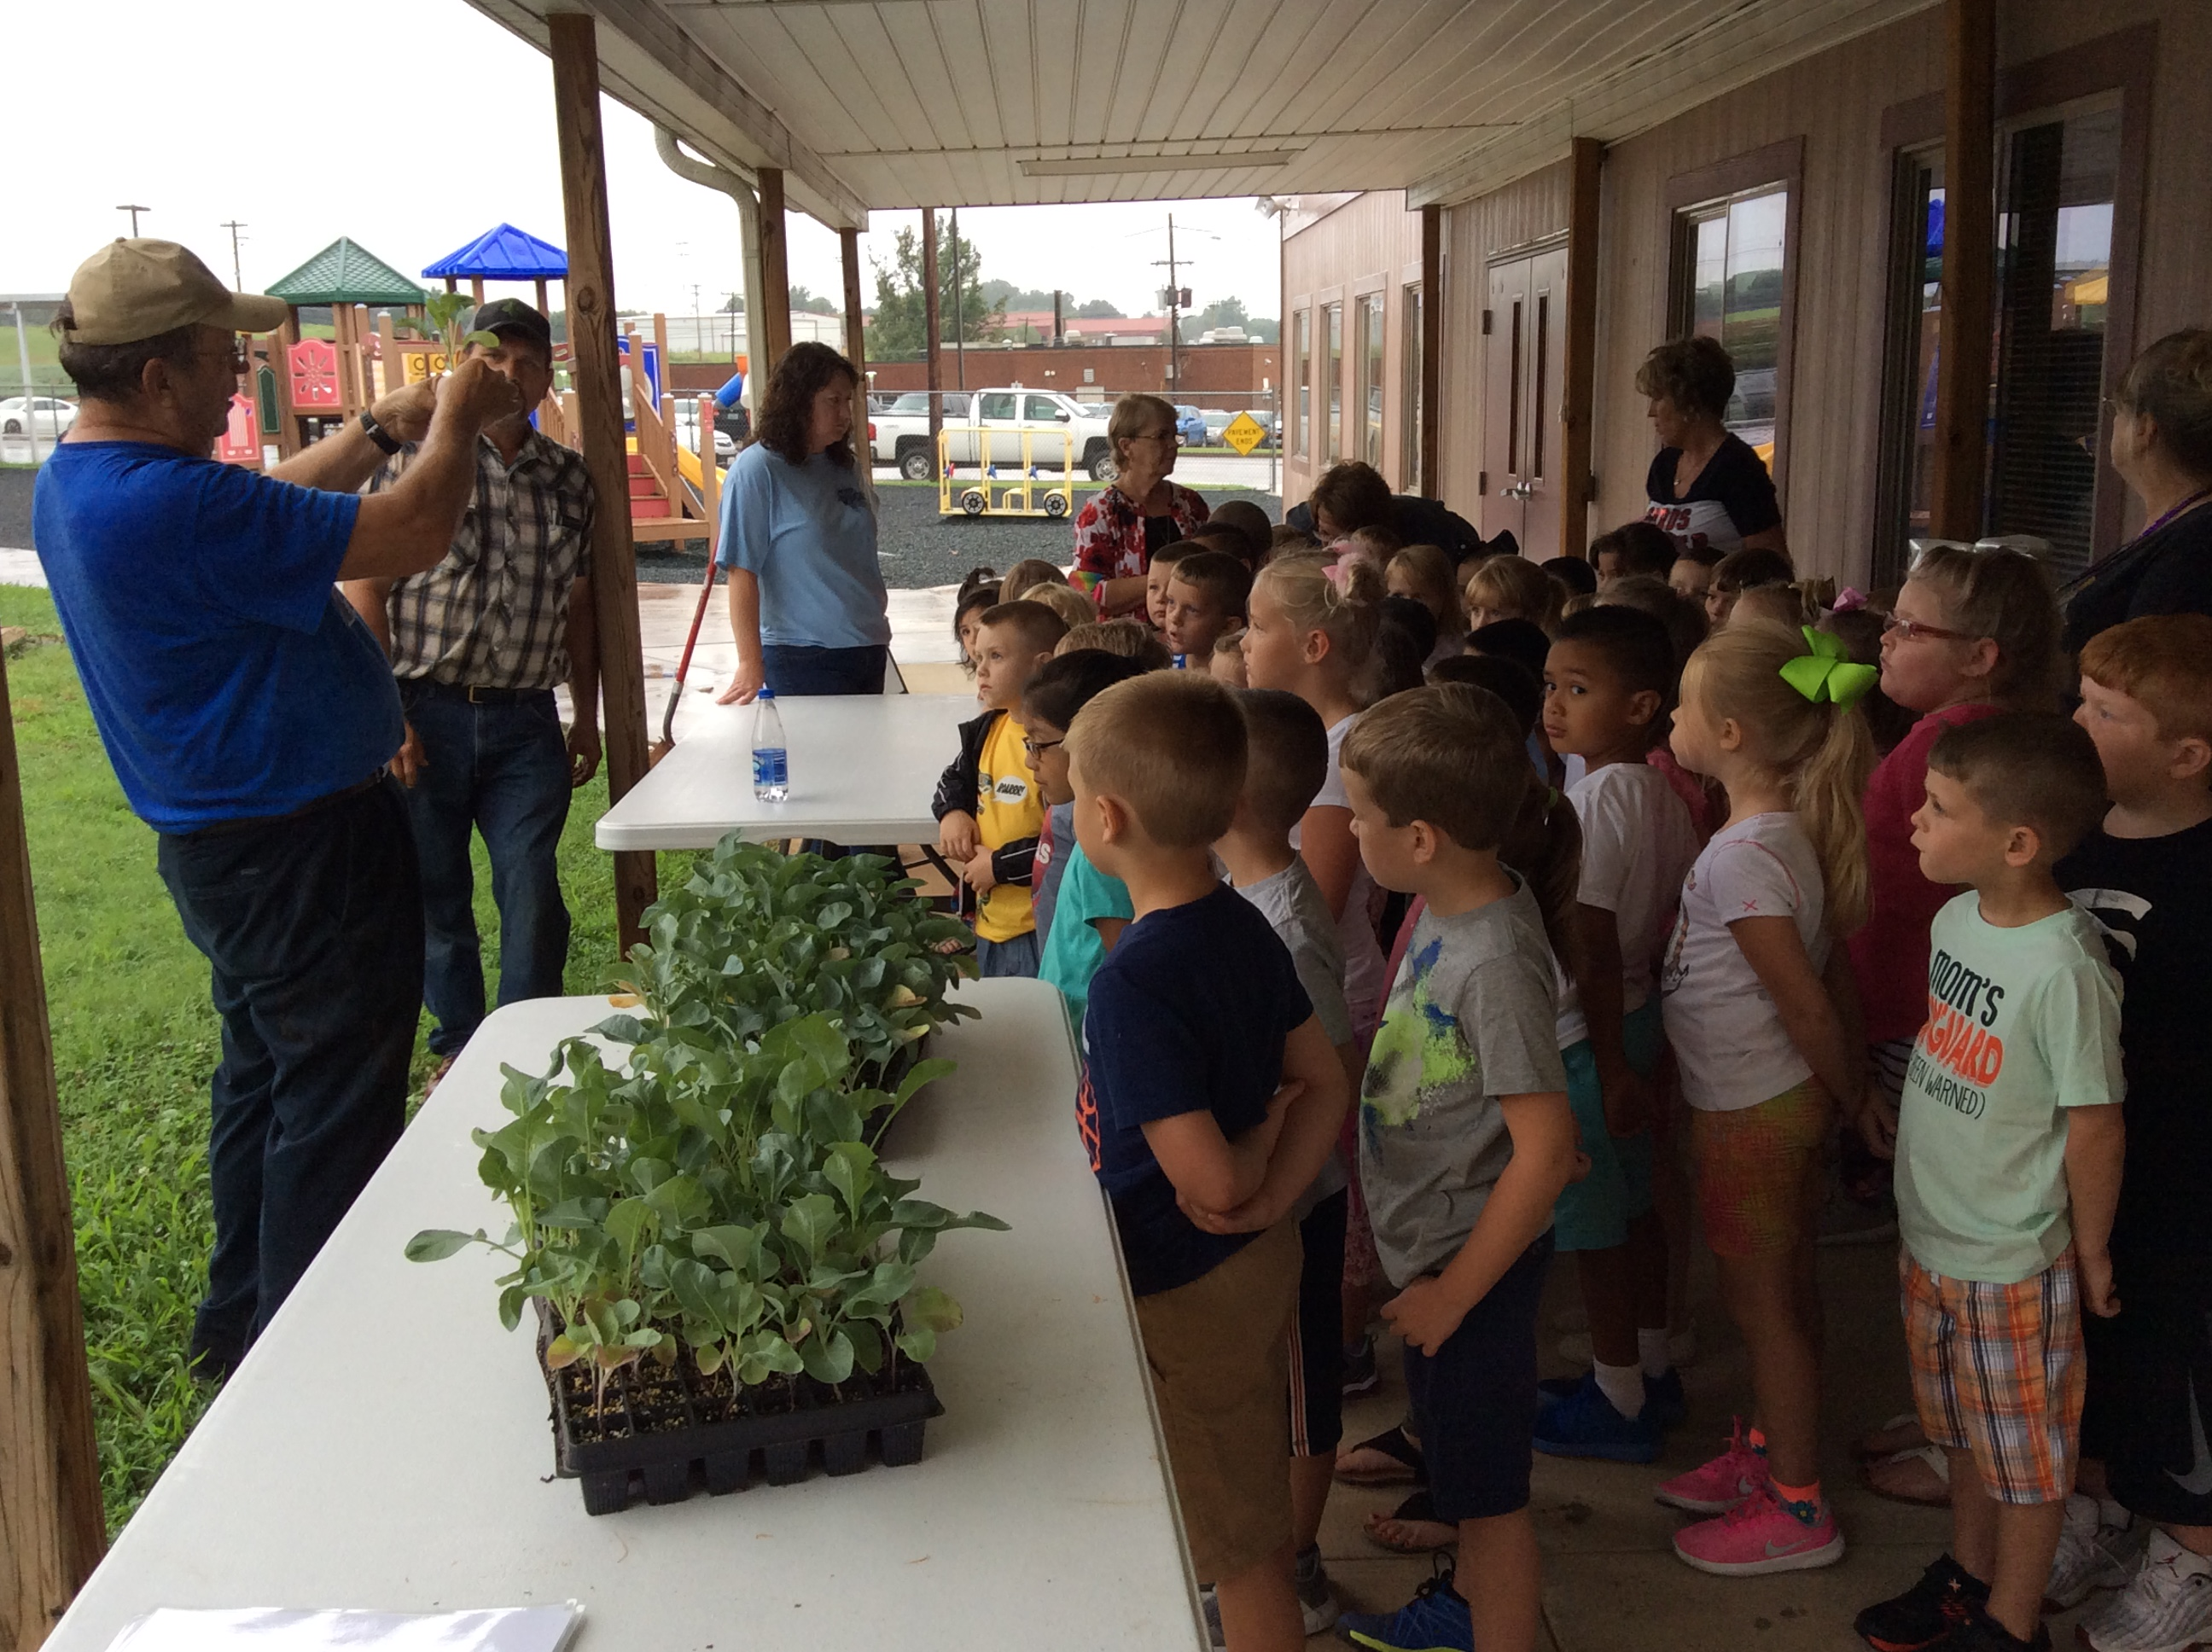 Glen Roberts teaching students about the broccoli plant.